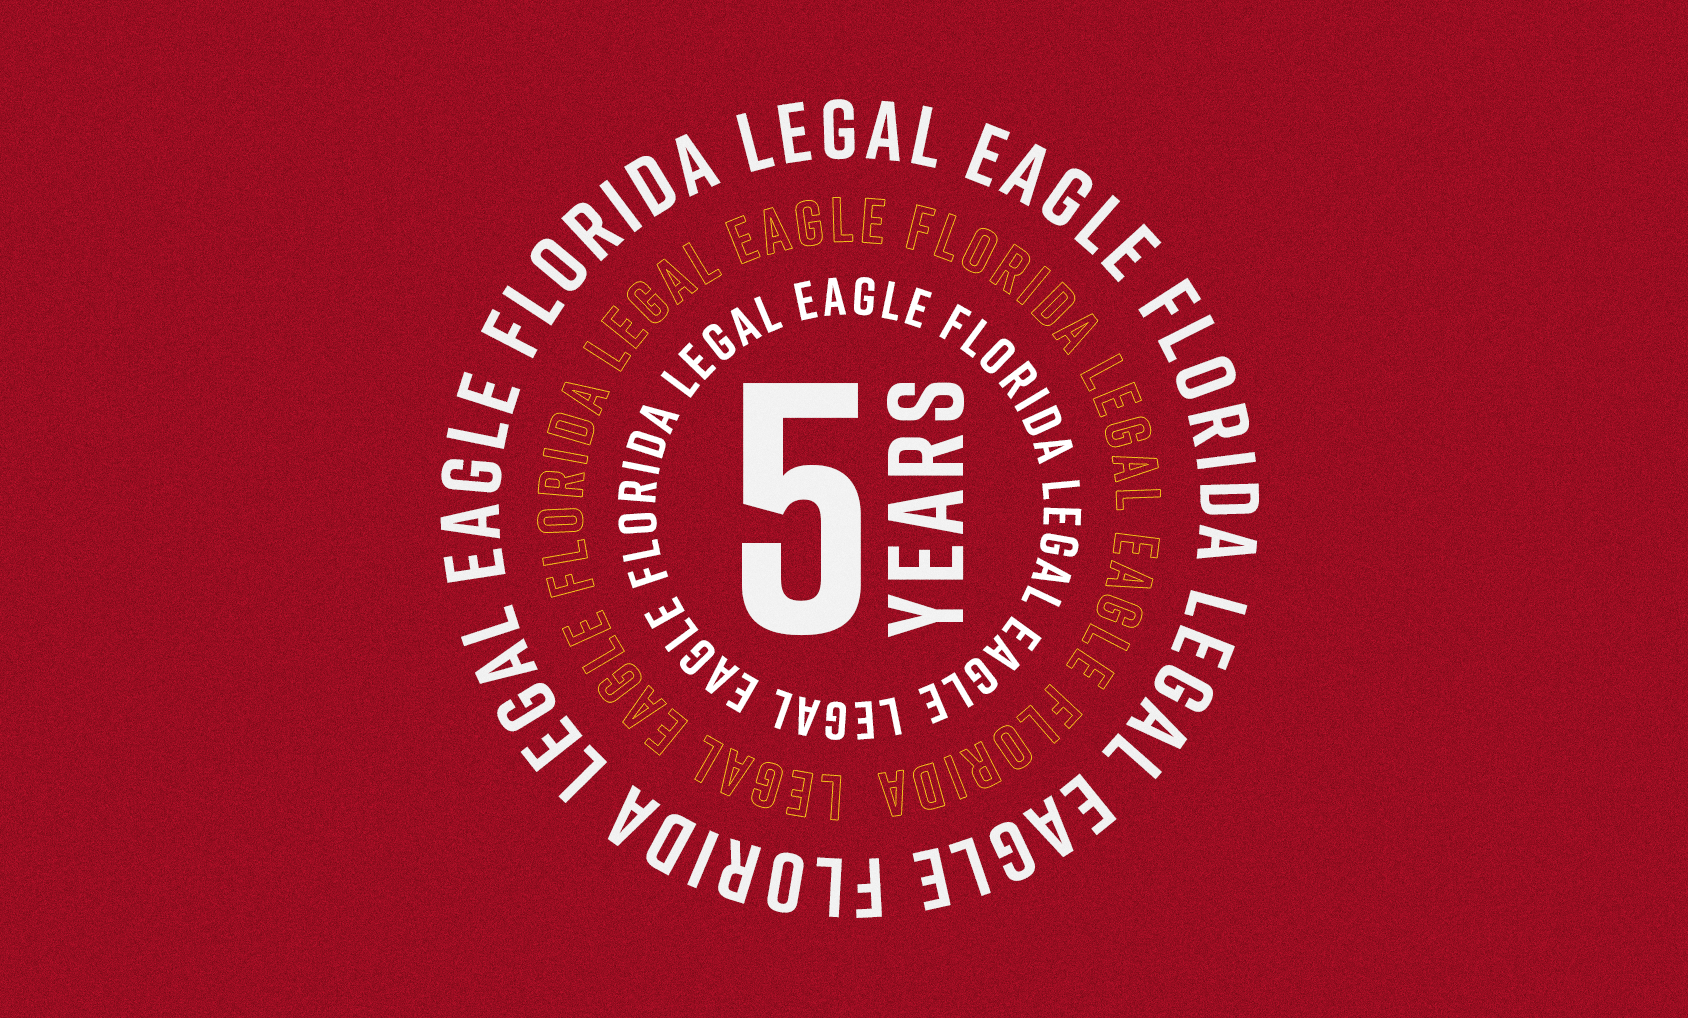 Legal Eagle Florida image